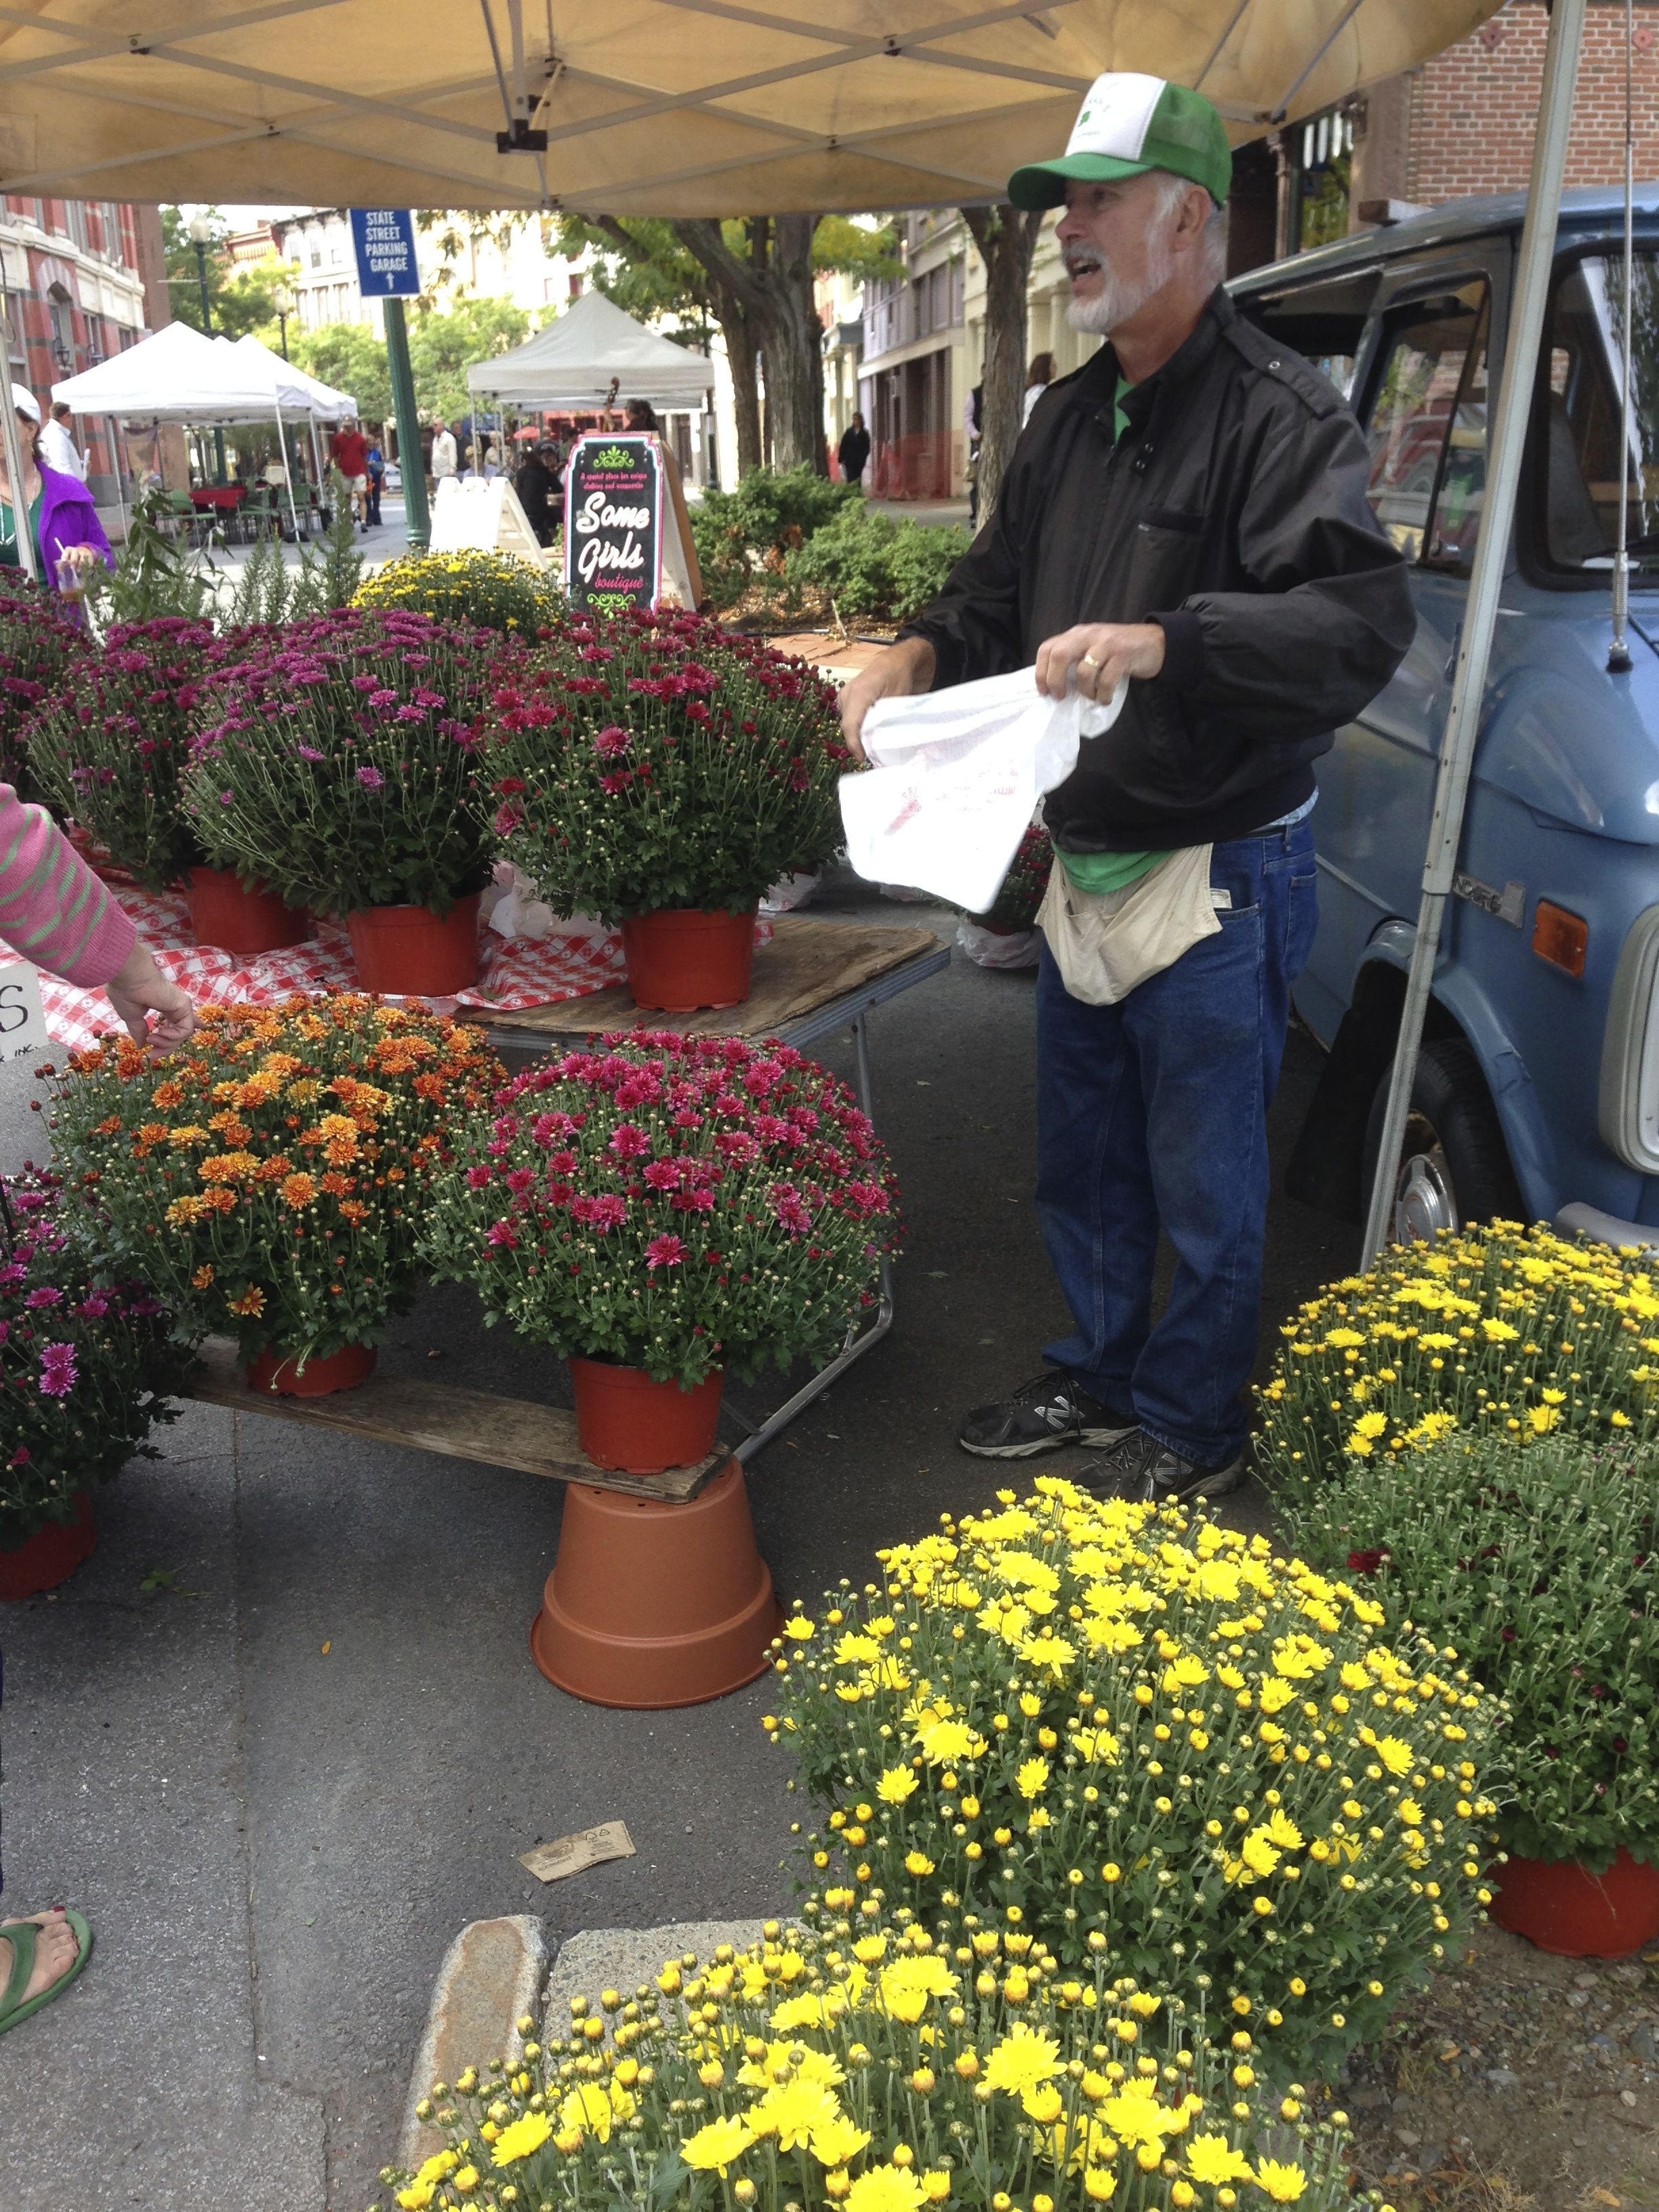 Flower vendor at the market